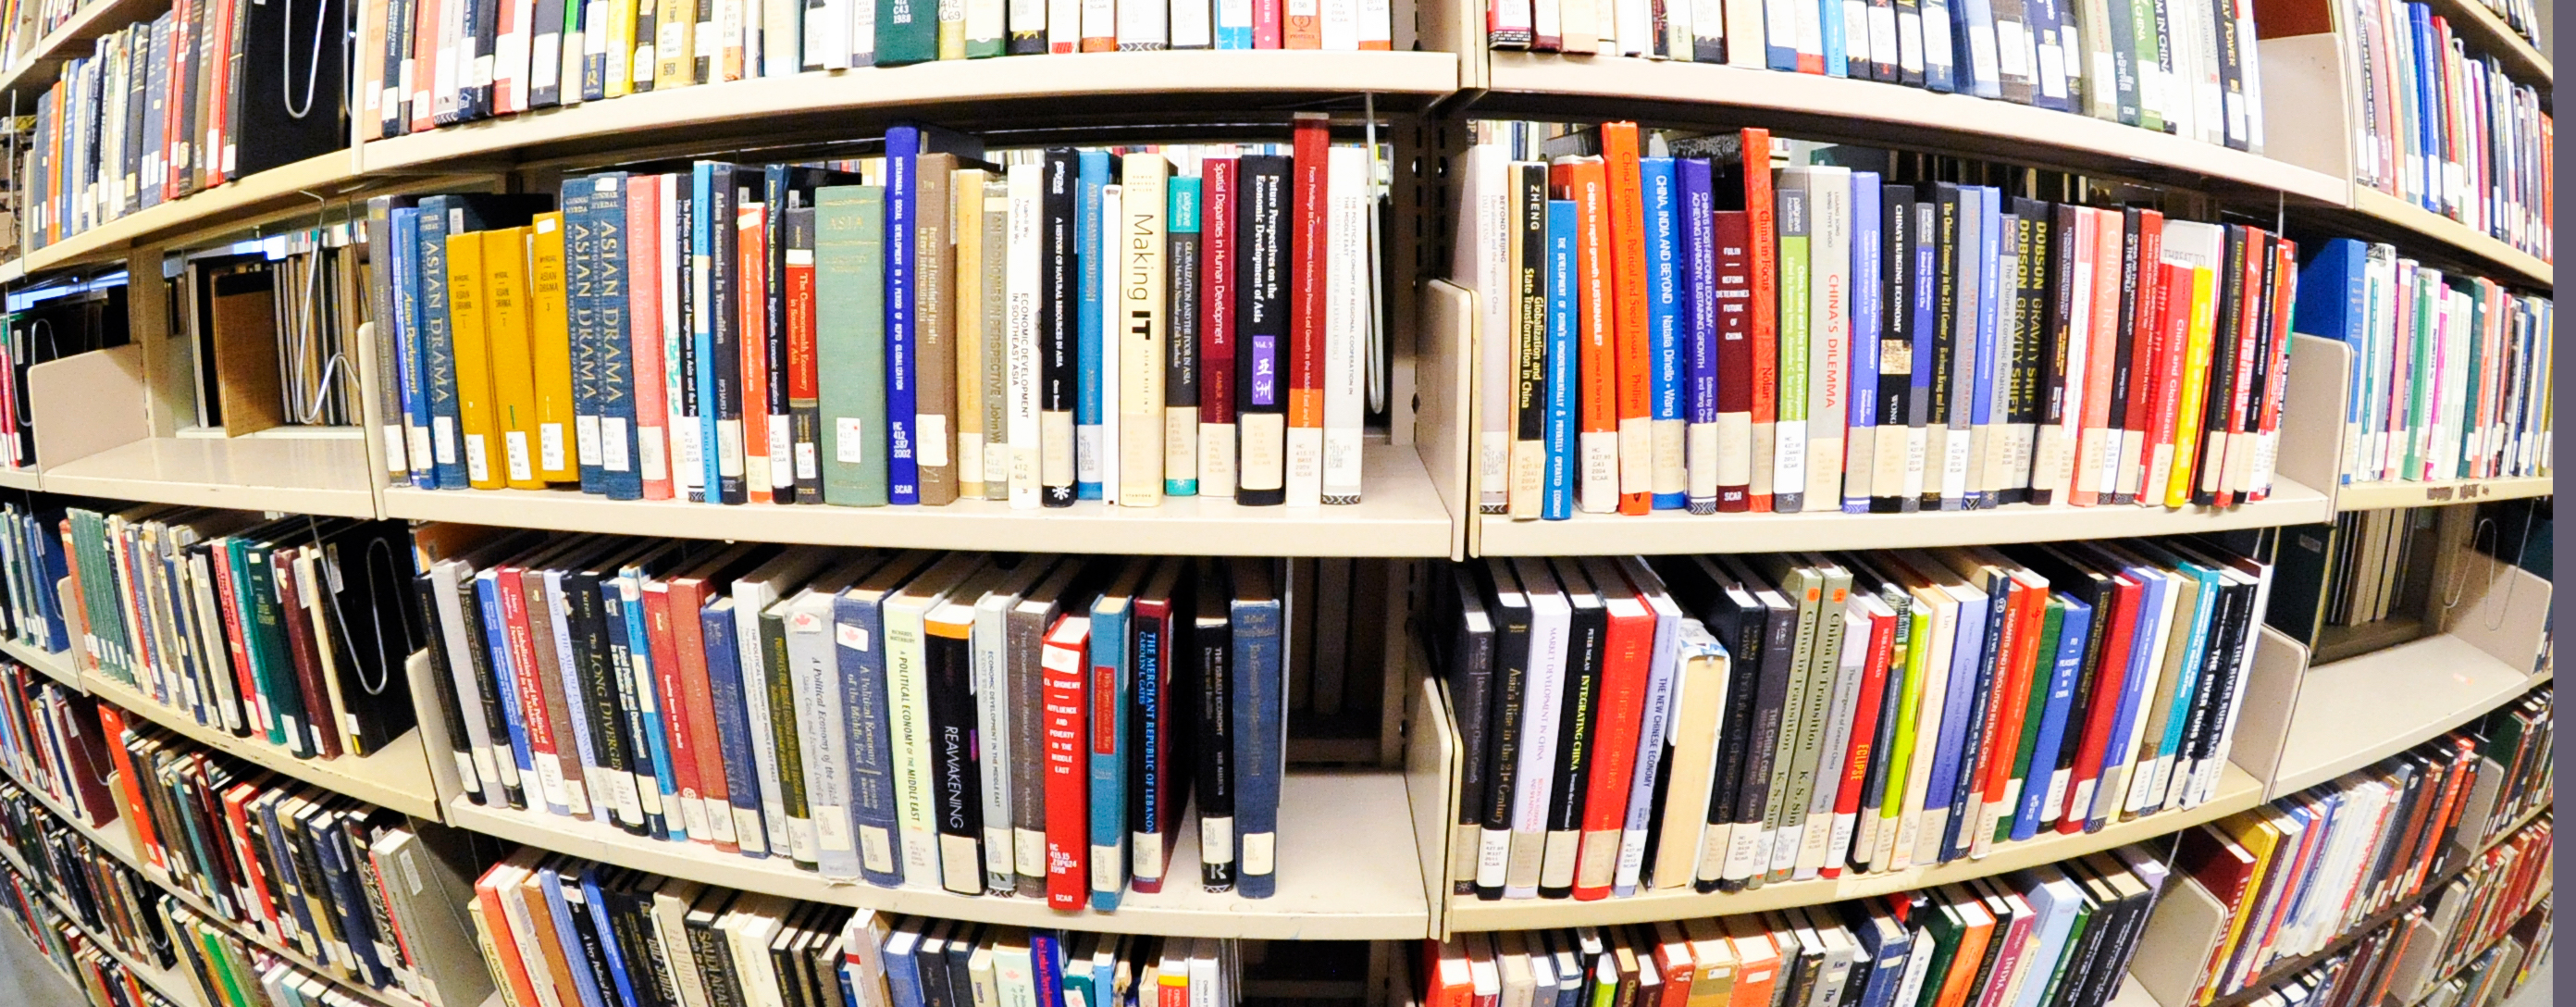 Photograph Of Books On A Library Shelf